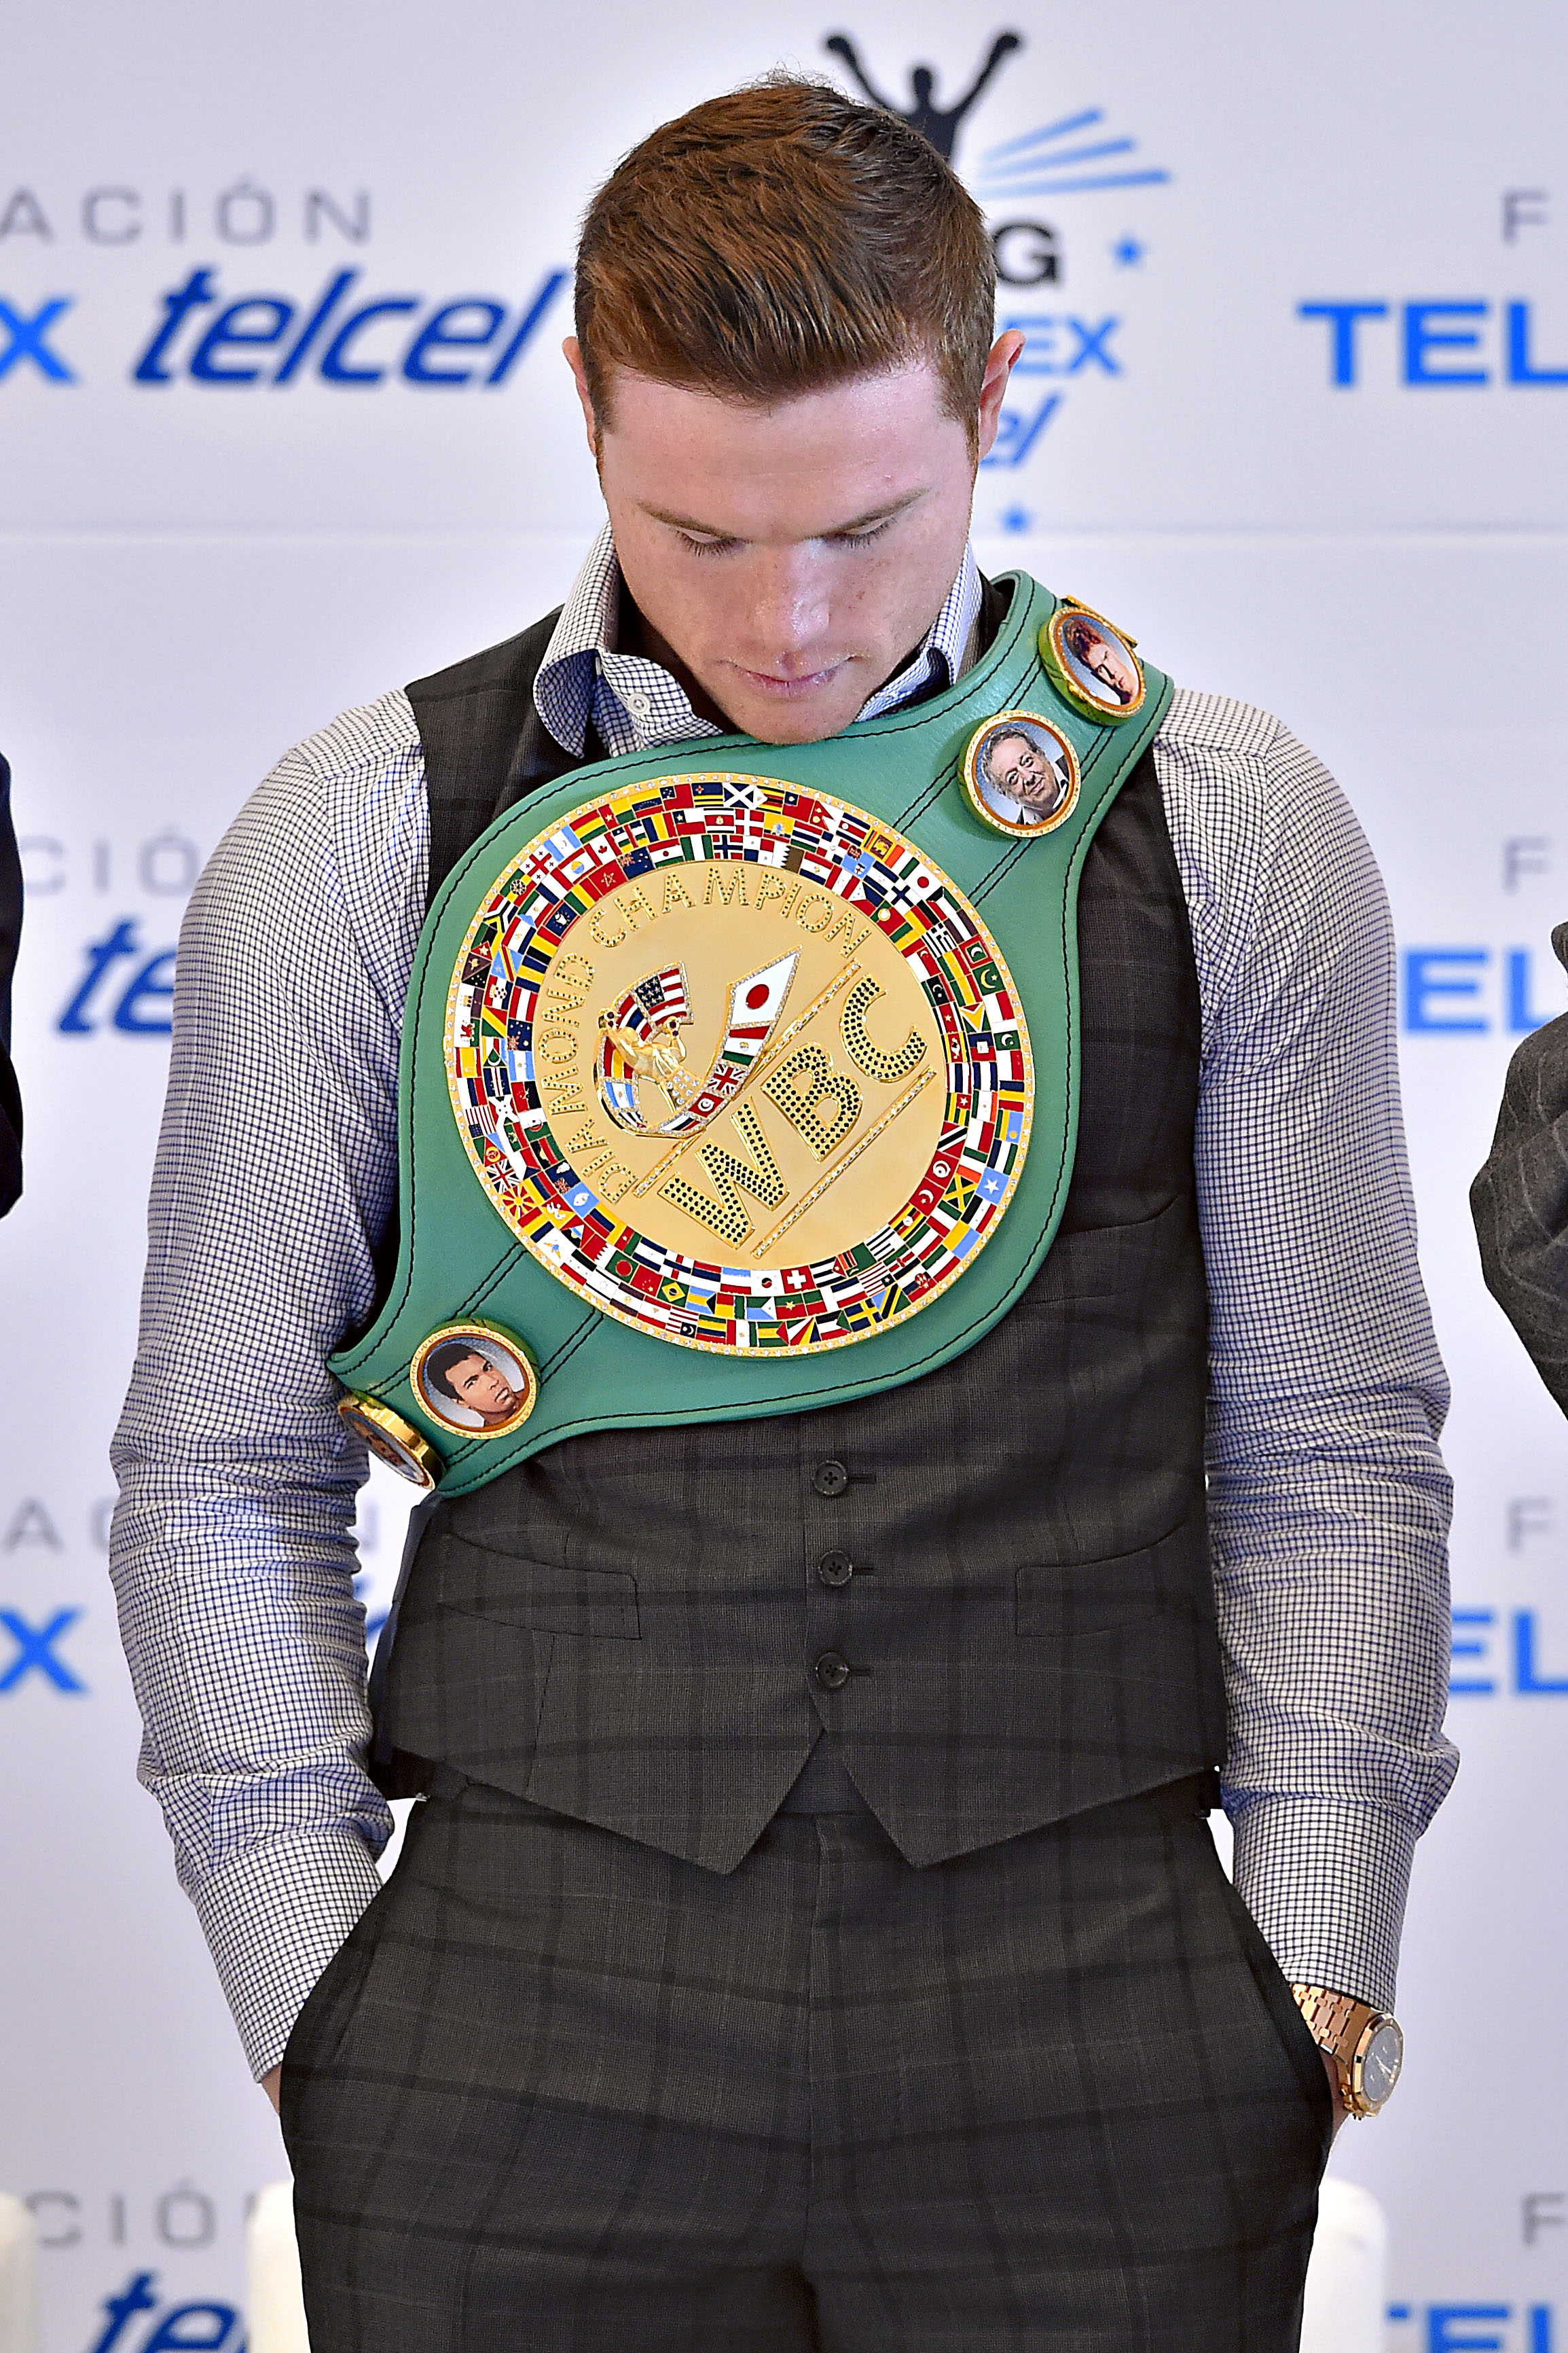 6540125 canelo Alvarez Presented With Wbc Middleweight Ch ionship Belt on oscar de lay hoya